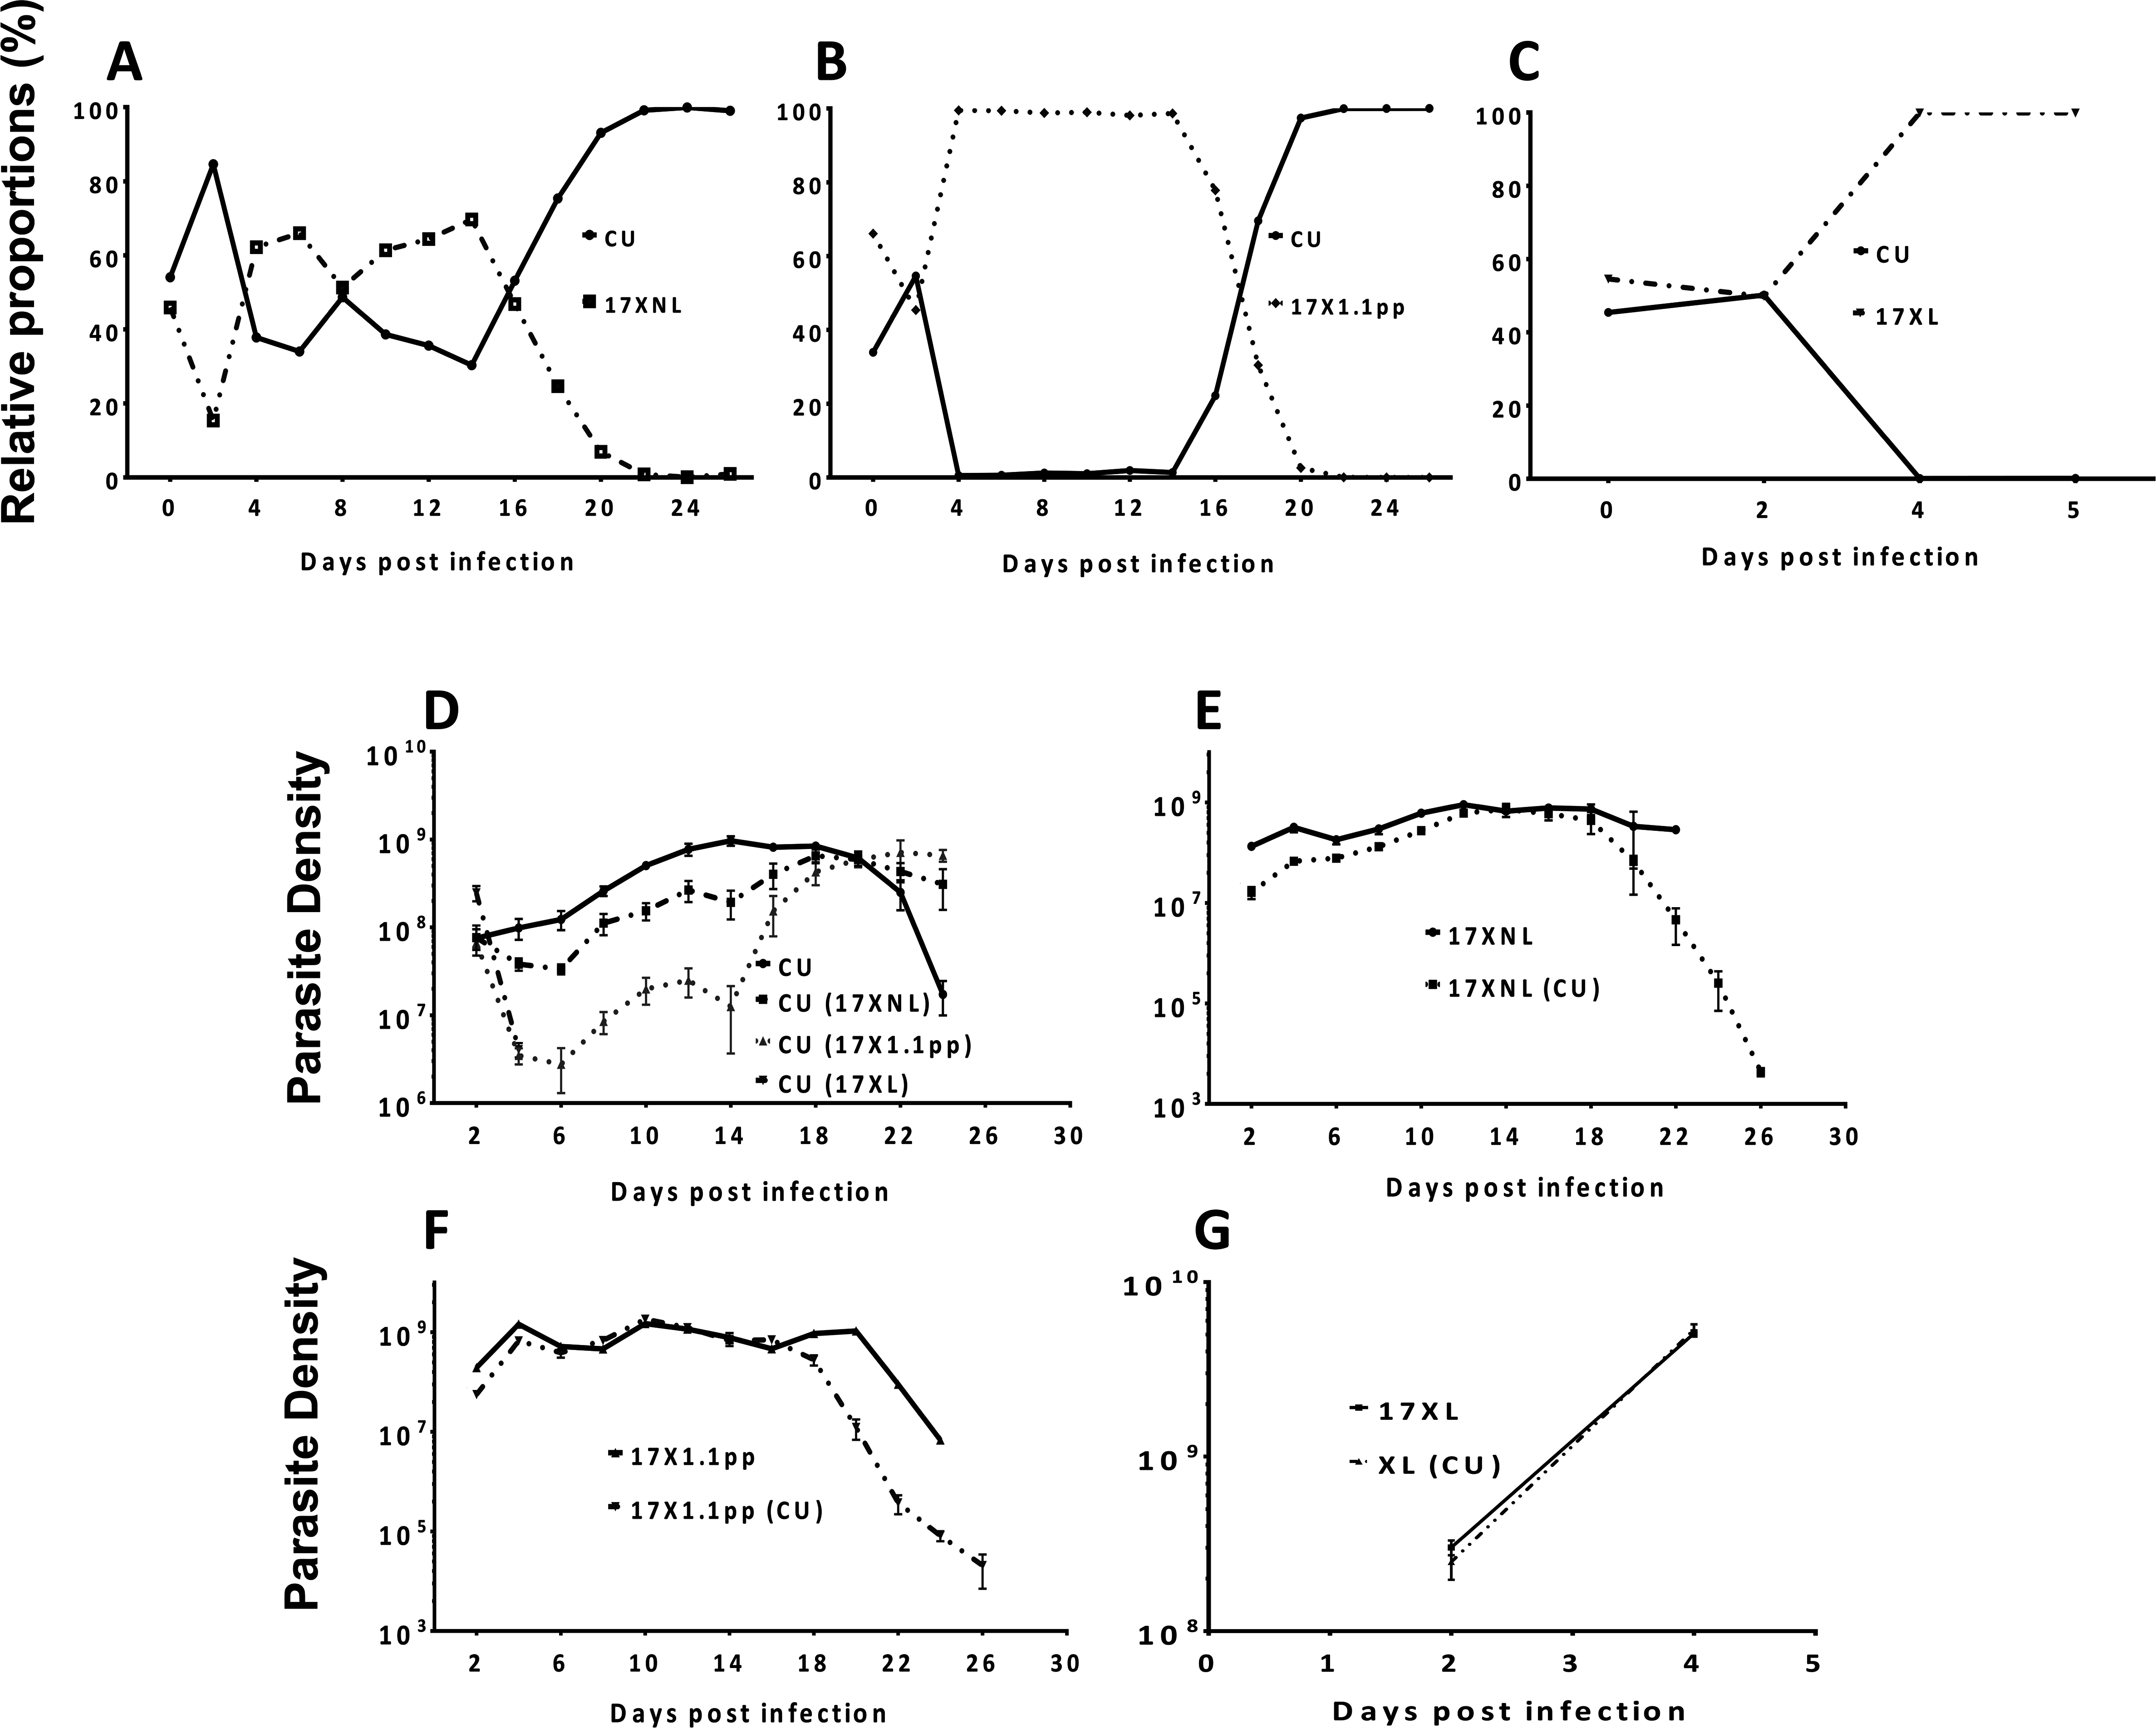 The relative proportions of strains of <i>Plasmodium yoelii yoelii</i> in mixed strain infections throughout the course of infections in mice (Panels A-C), and the parasite densities of the strains in single and mixed infections (Panels D-G).